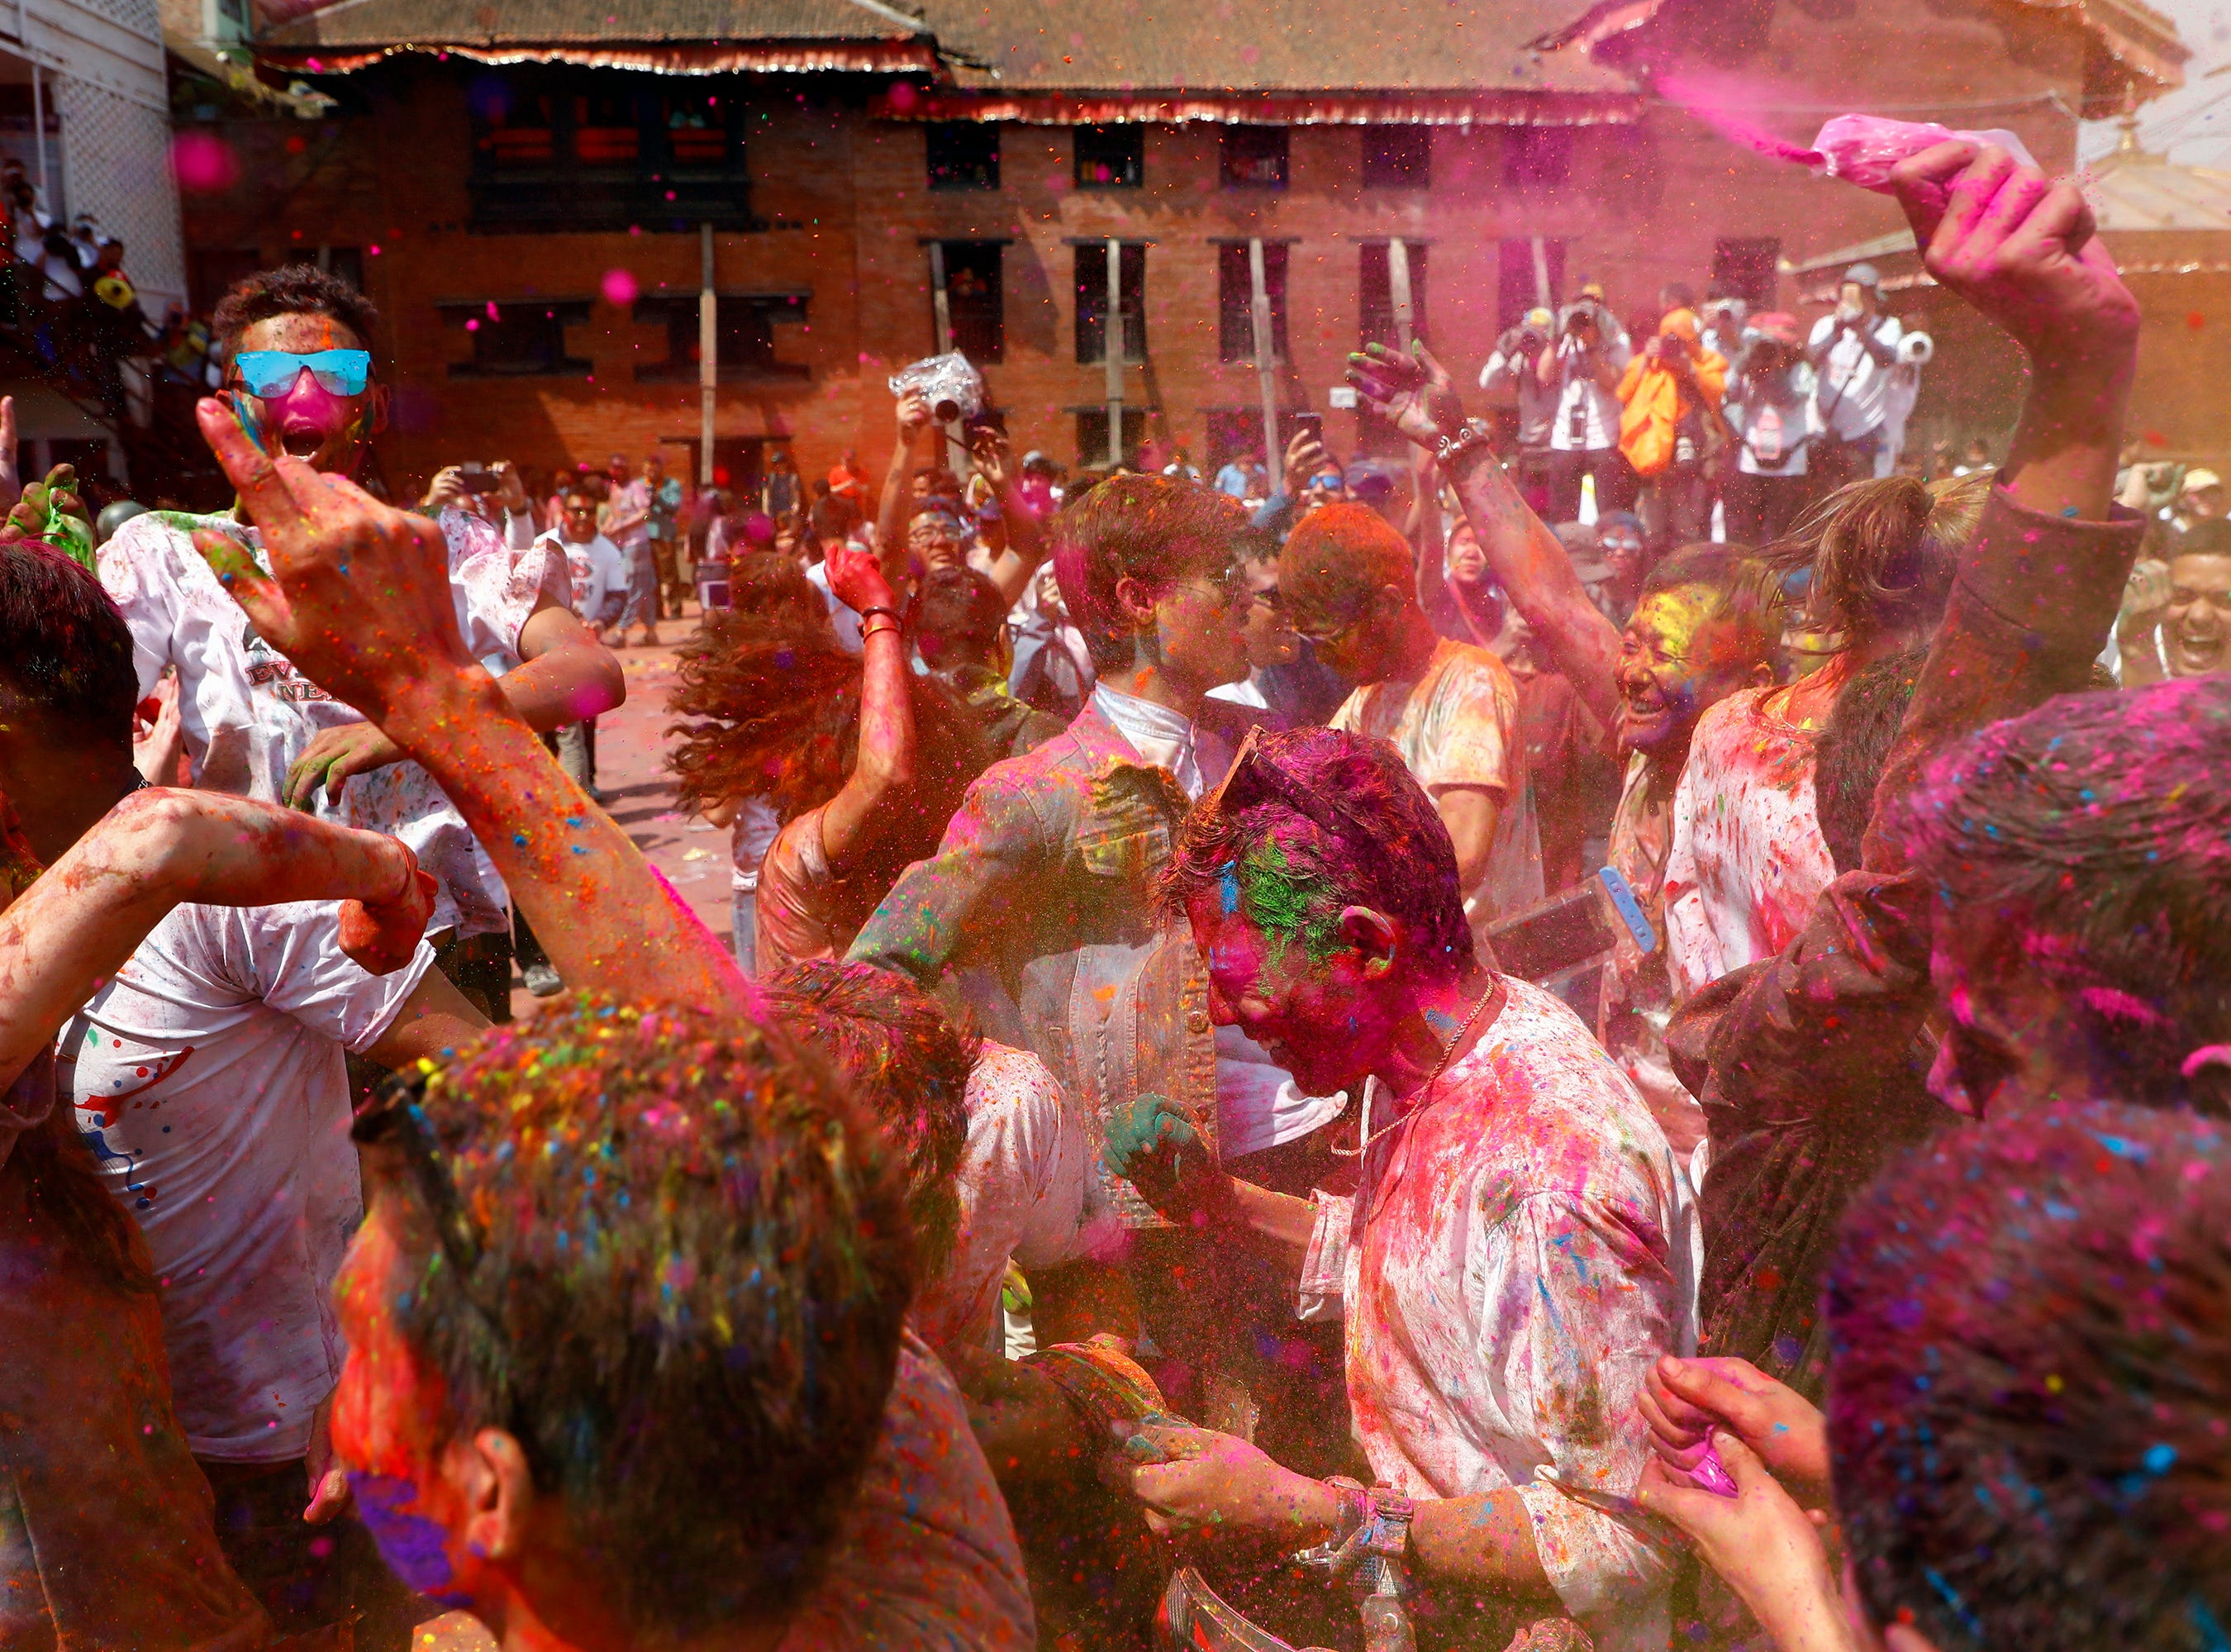 Nepalese people painted with colored powder dance during Holi Festival celebrations in Kathmandu, Nepal on March 20, 2019. Holi, also known as the Festival of Colors, marks the beginning of spring and is celebrated all over Nepal and neighboring India.